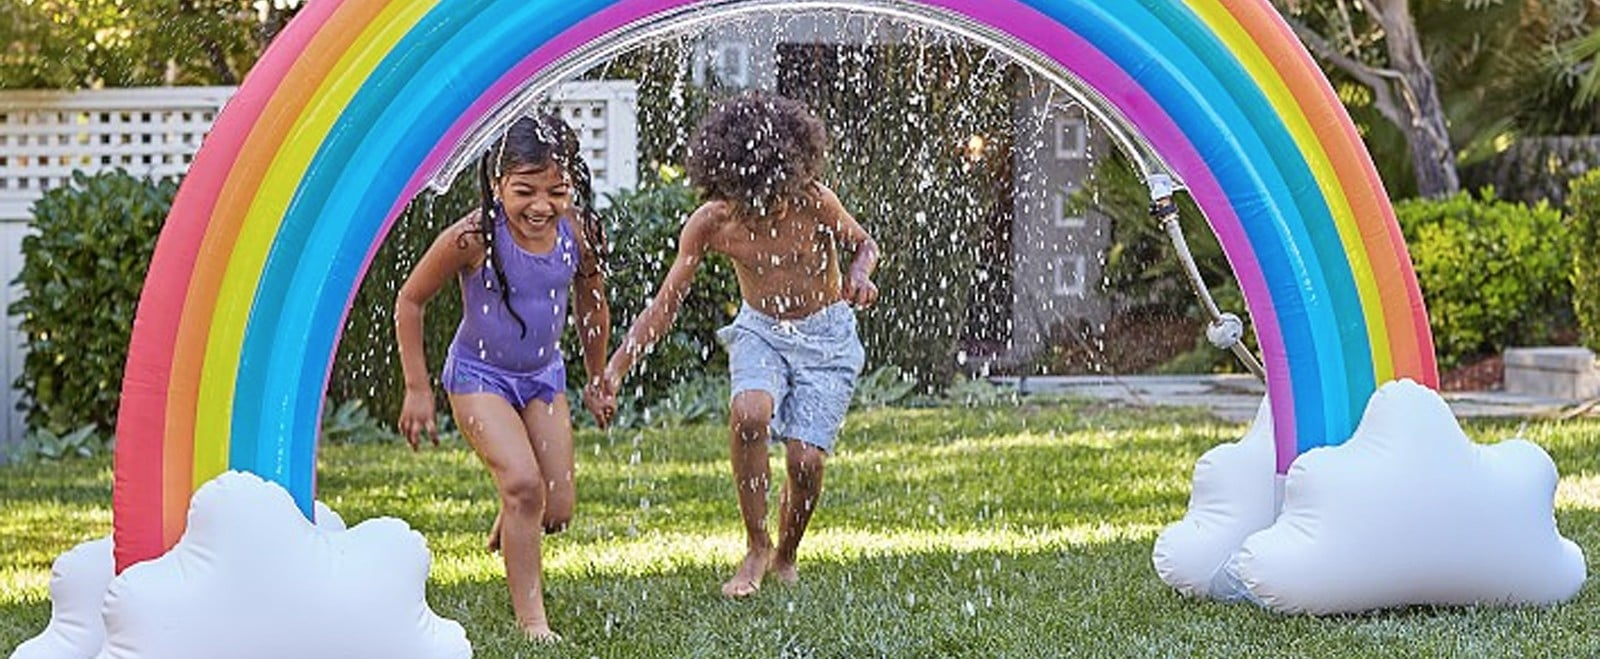 Add This Magical, Inflatable Rainbow Sprinkler to the List of Toys You NEED This Summer